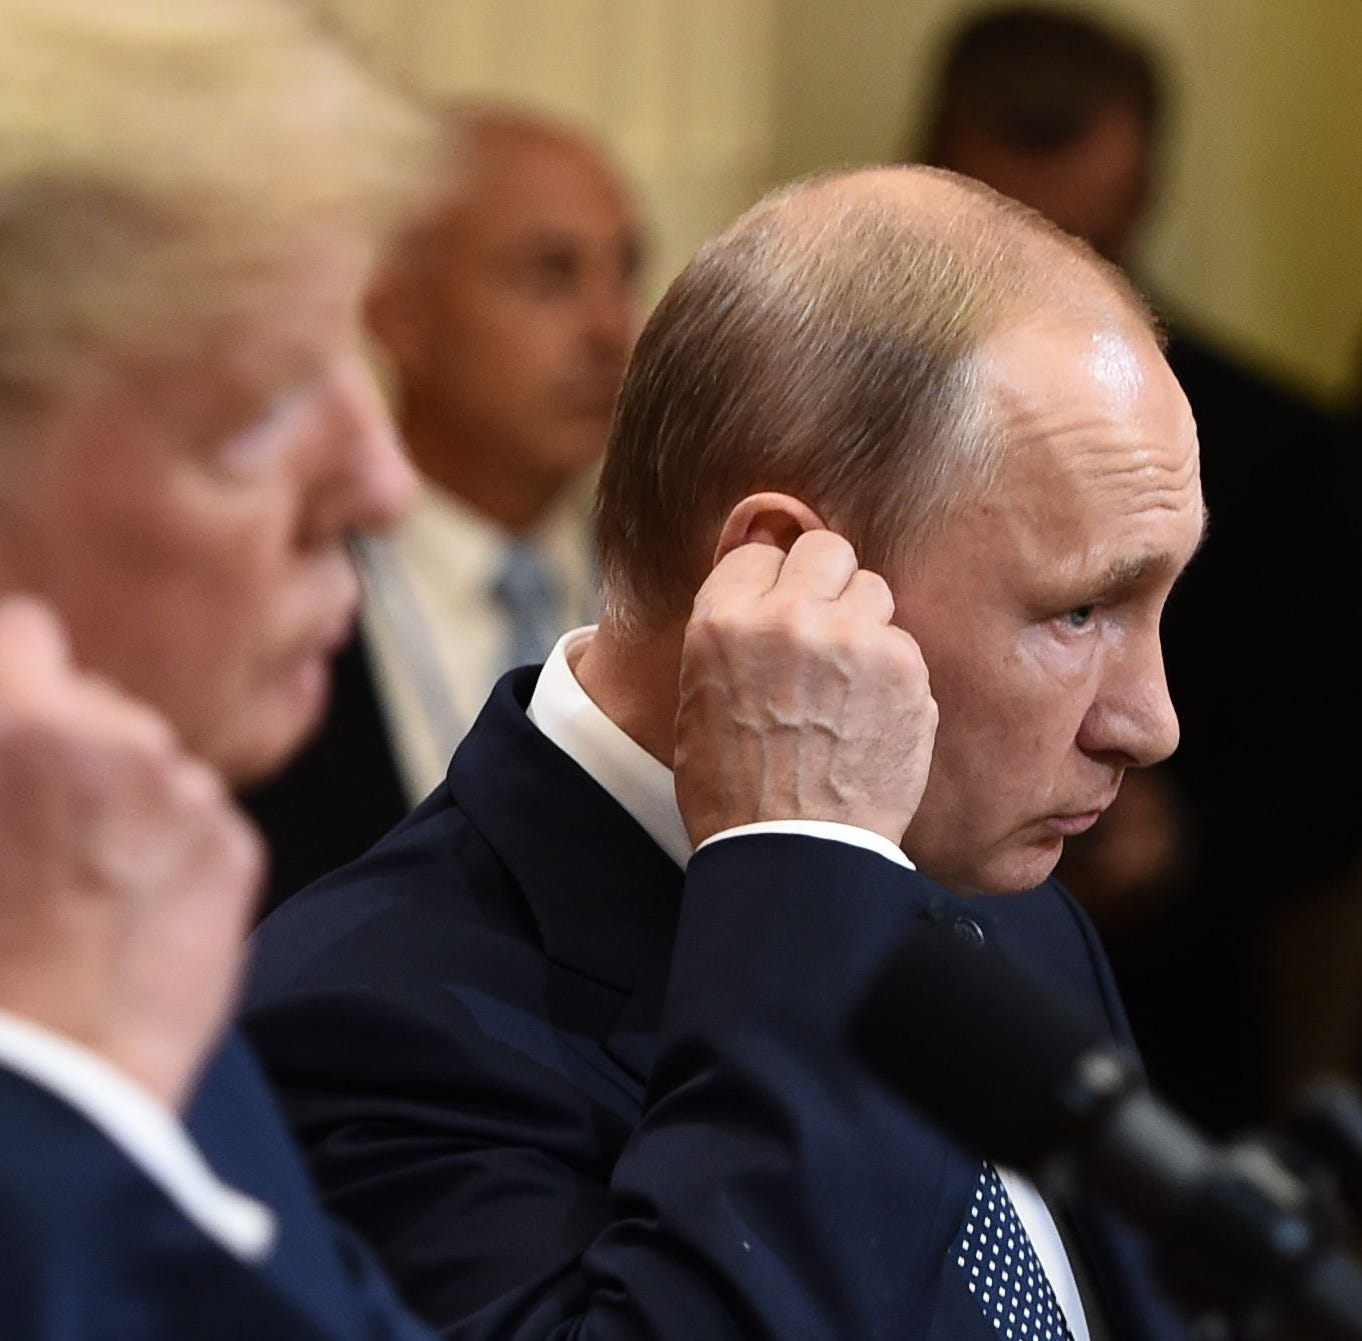 TOPSHOT - US President Donald Trump and Russia's President Vladimir Putin attend a joint press conference after a meeting at the Presidential Palace in Helsinki, on July 16, 2018. / AFP PHOTO / Brendan SMIALOWSKIBRENDAN SMIALOWSKI/AFP/Getty Images ORIG FILE ID: AFP_17Q3I0